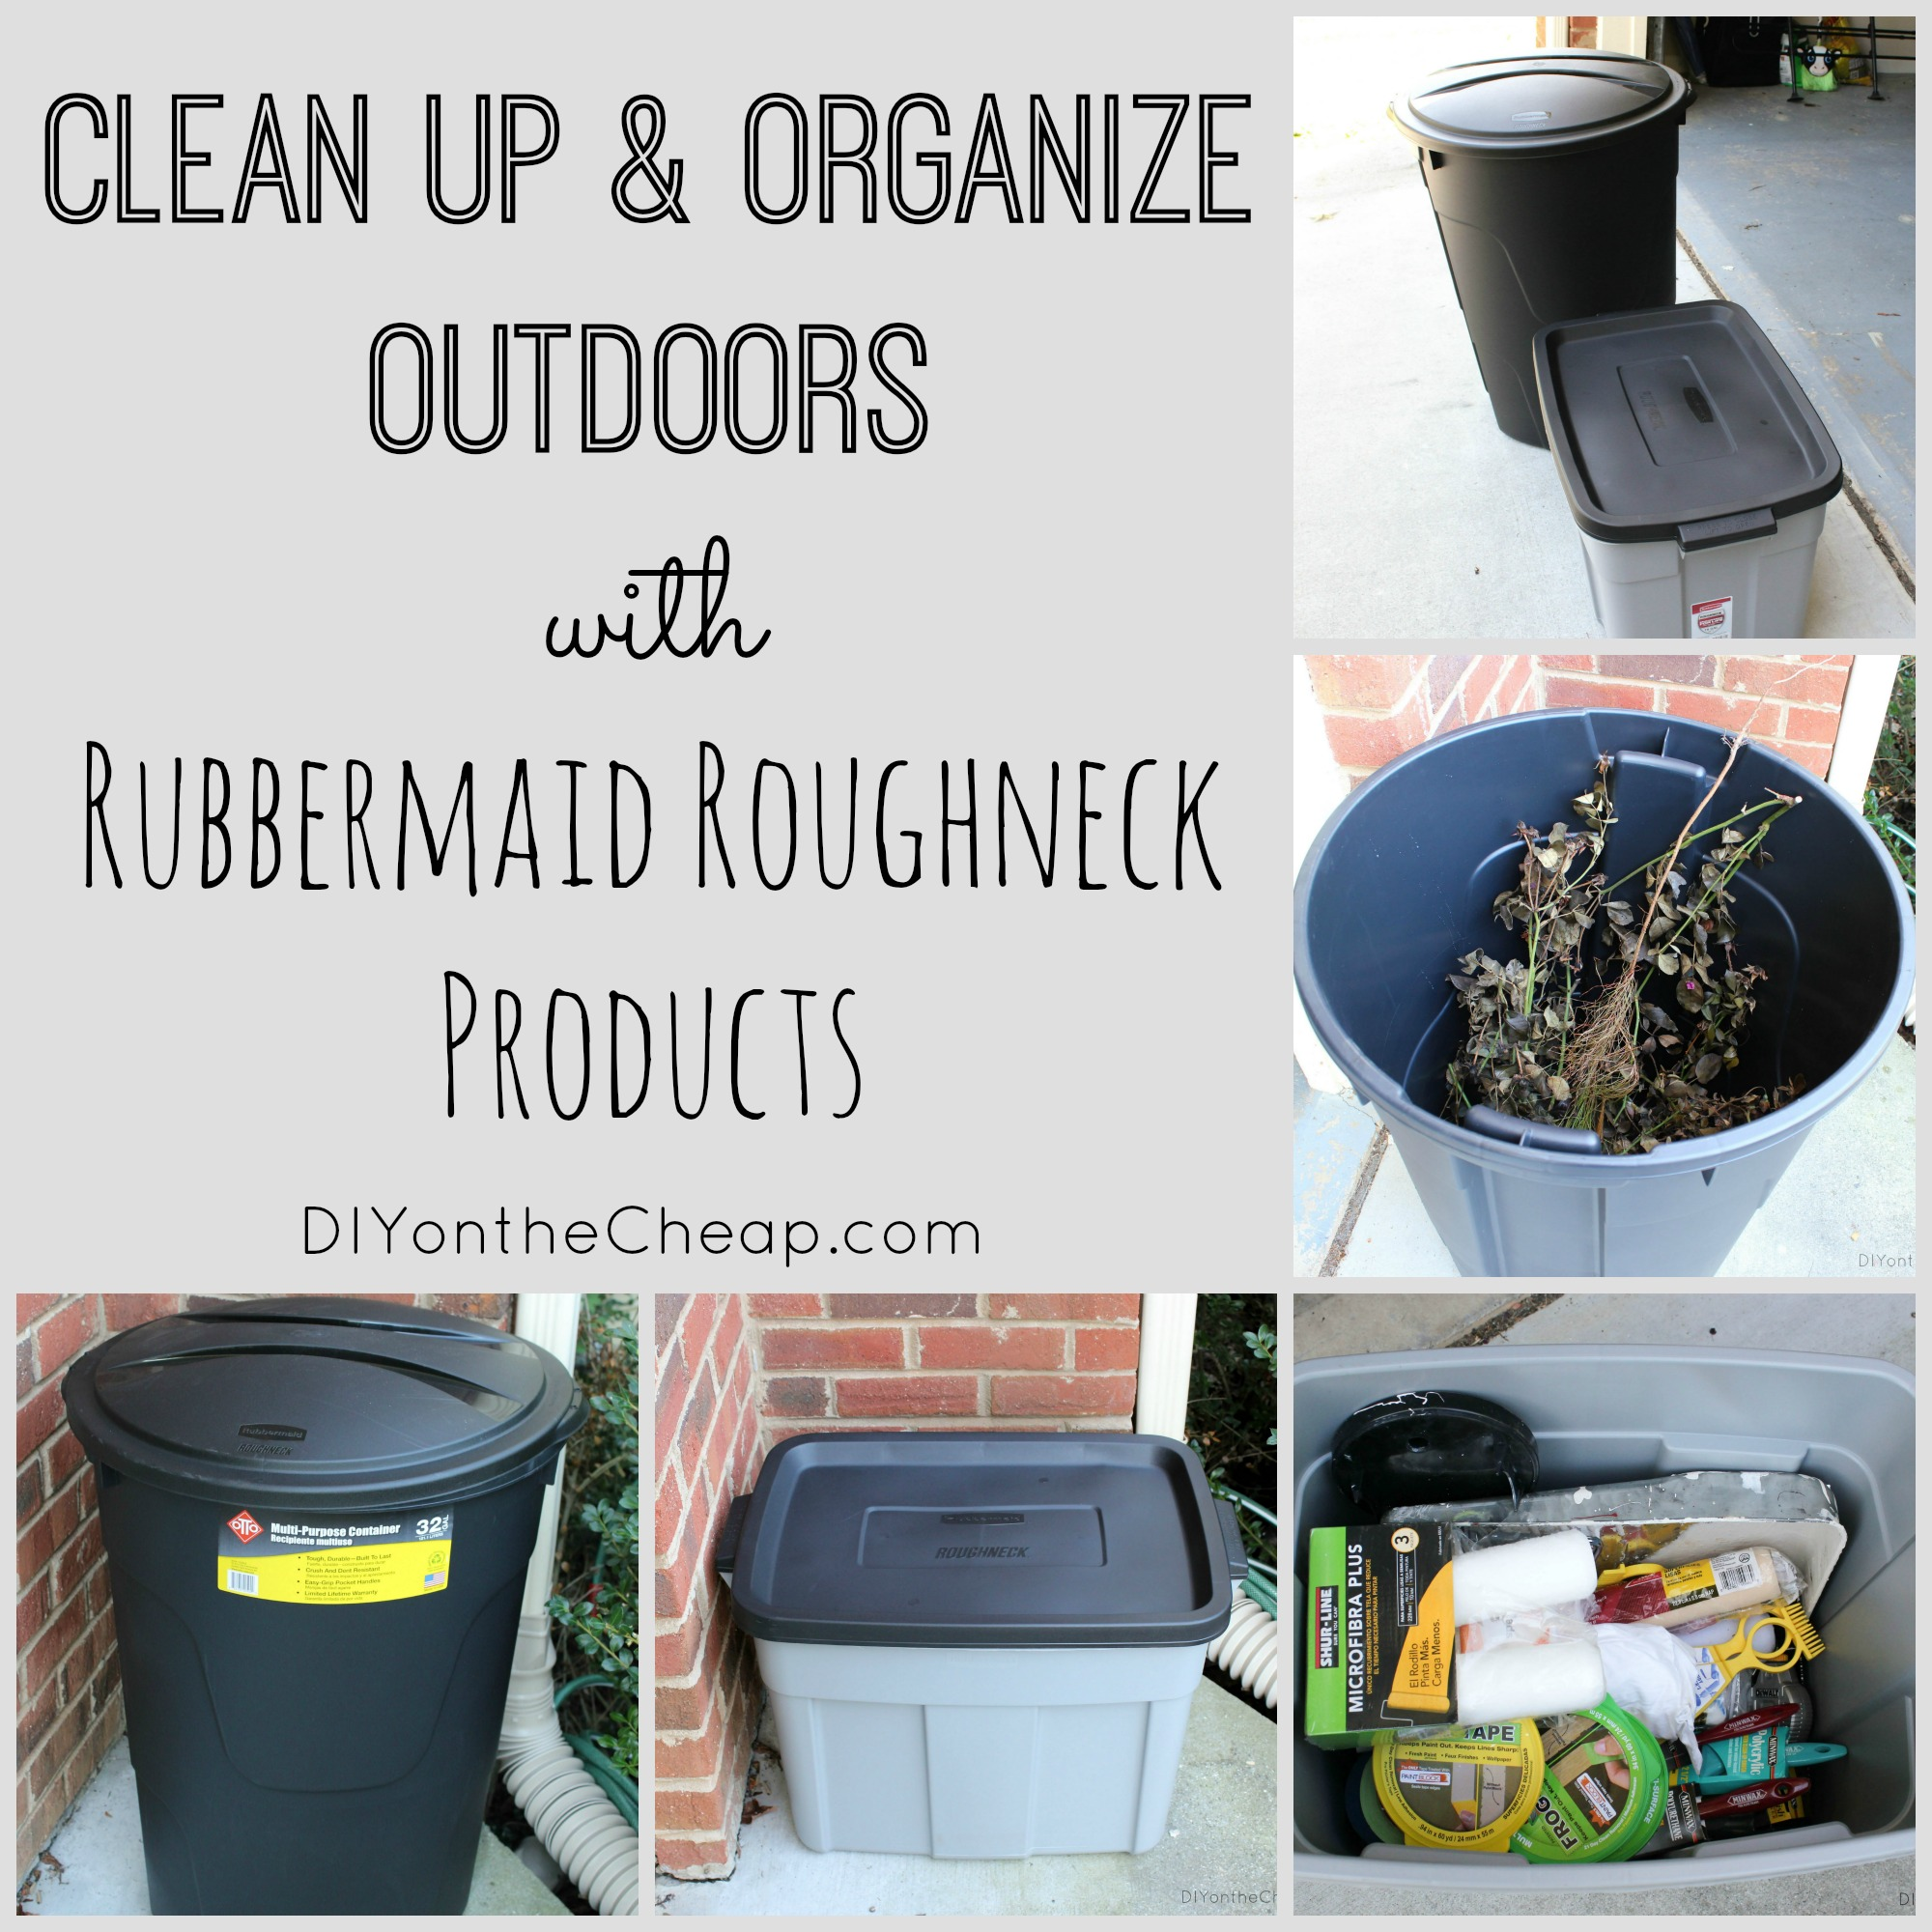 Outdoor Organizing with Rubbermaid